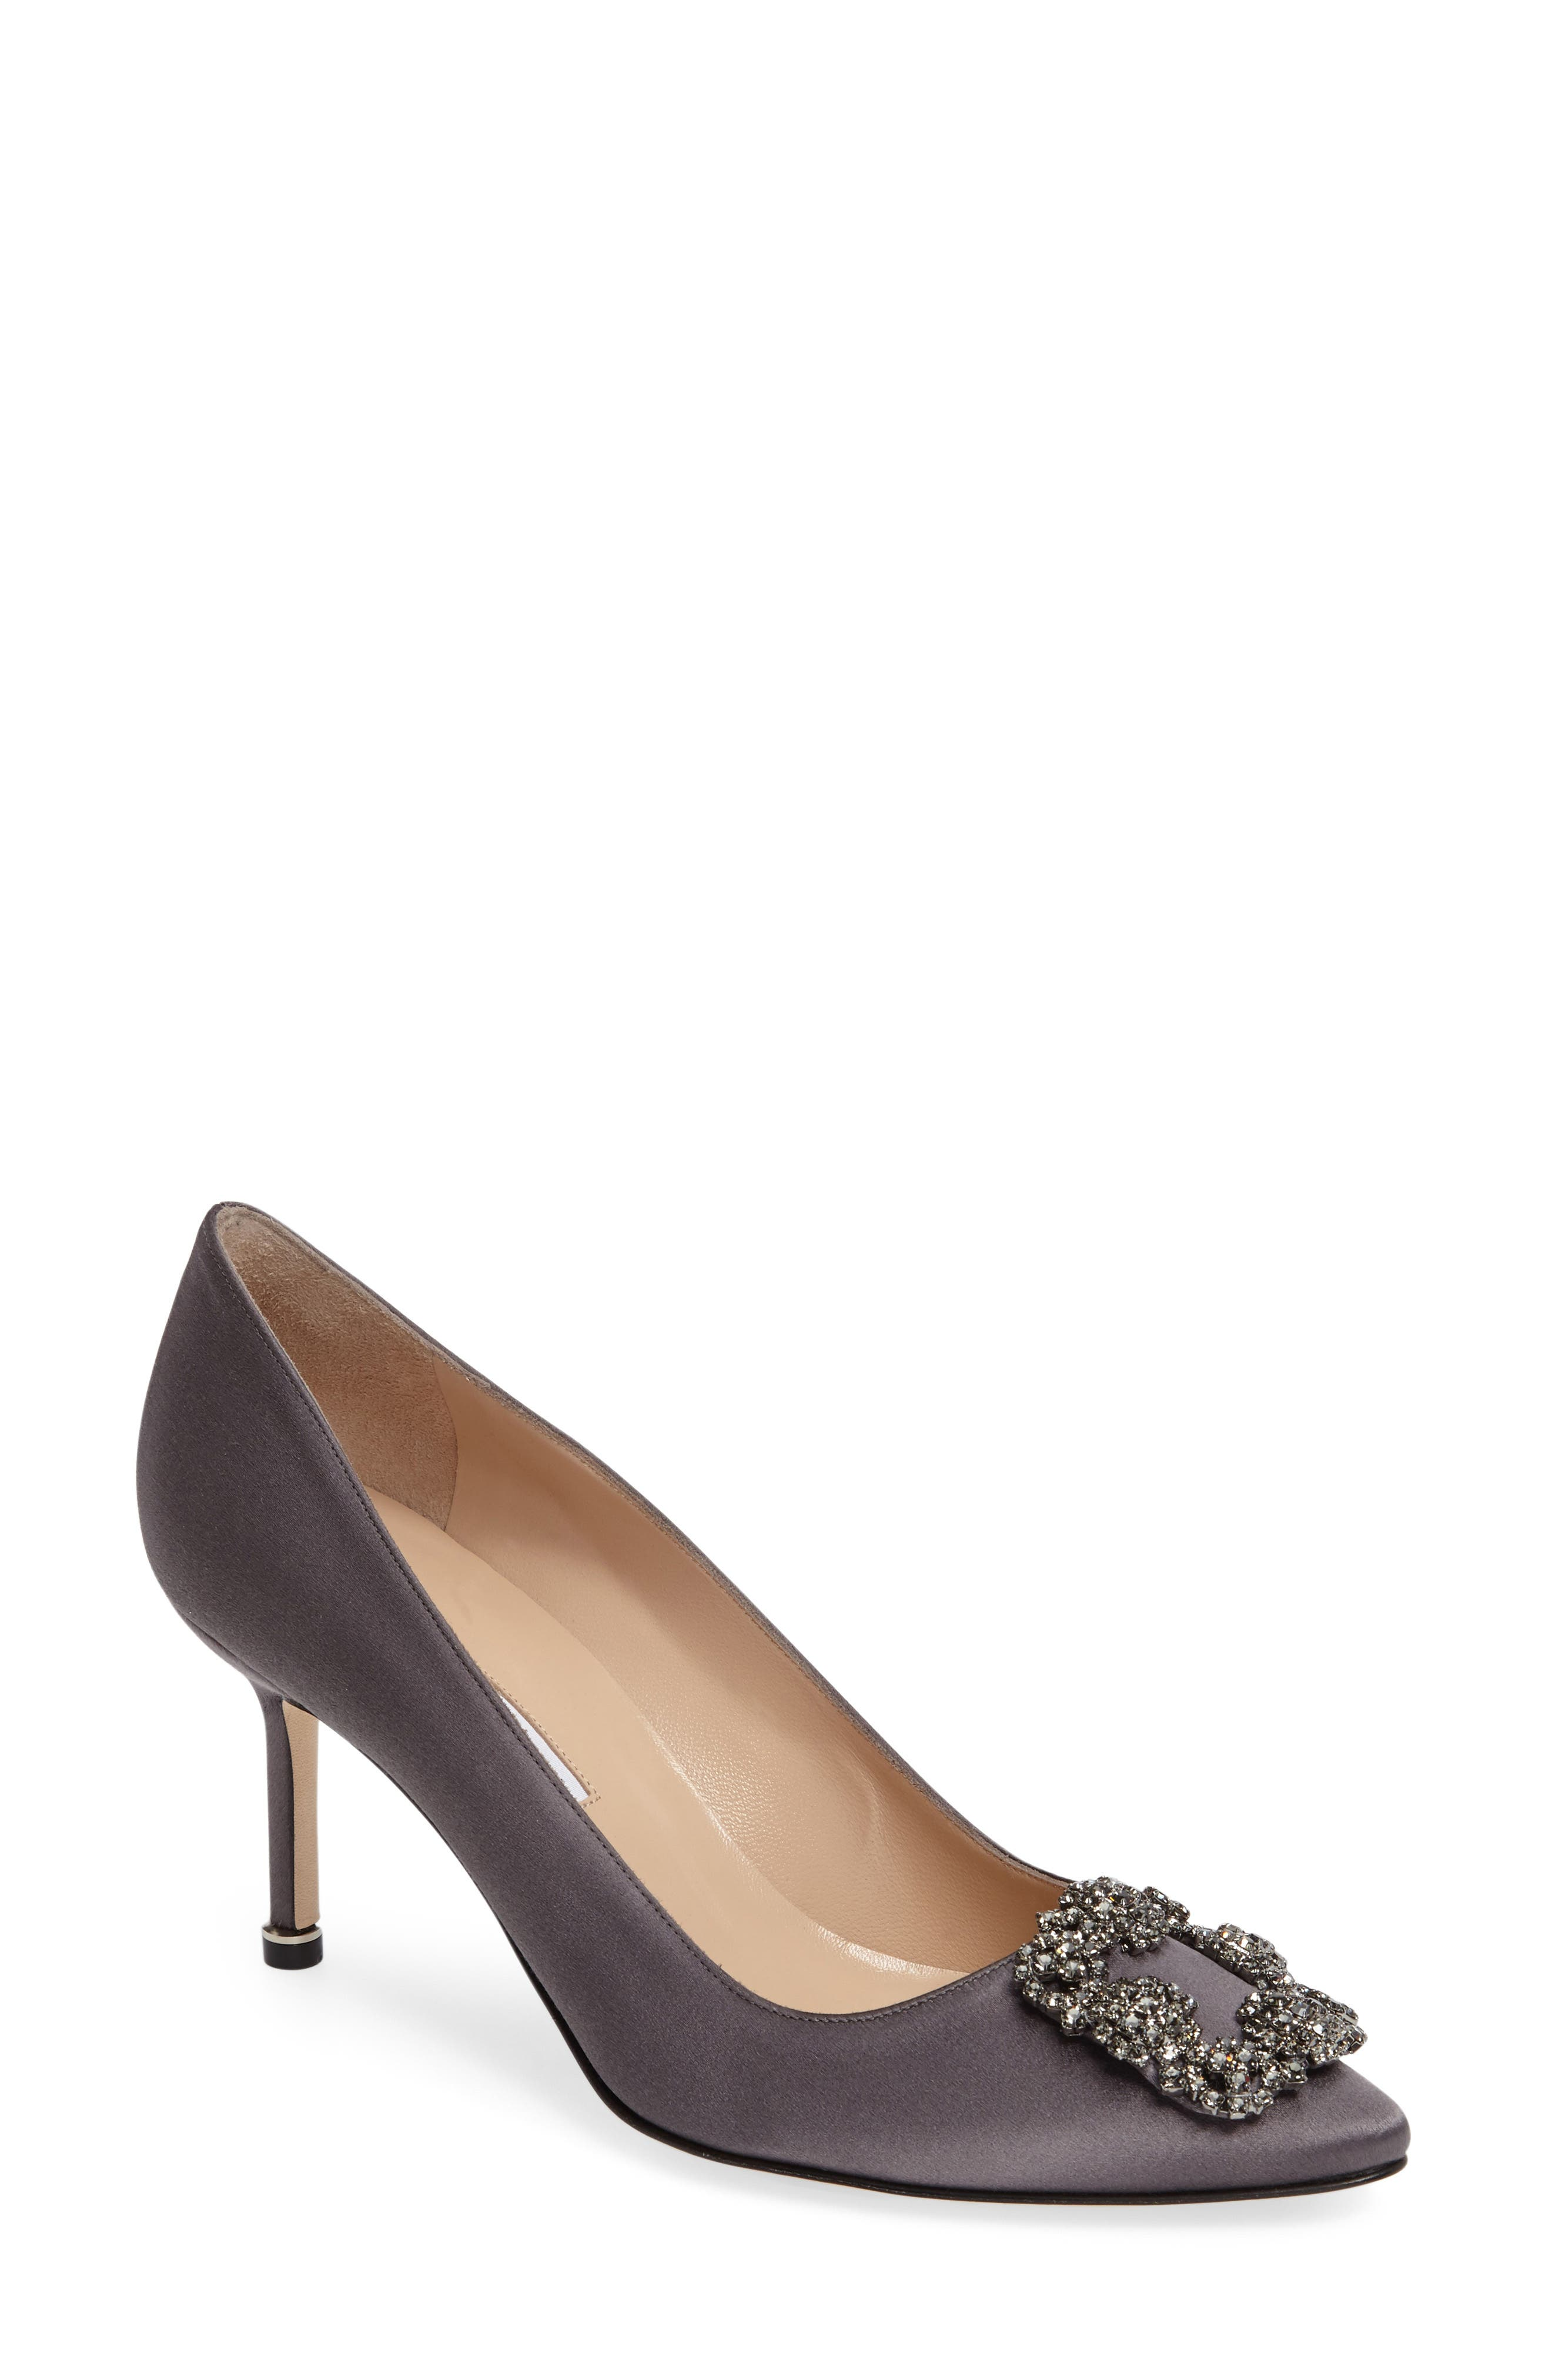 MANOLO BLAHNIK 'Hangisi' Pointy Toe Pump